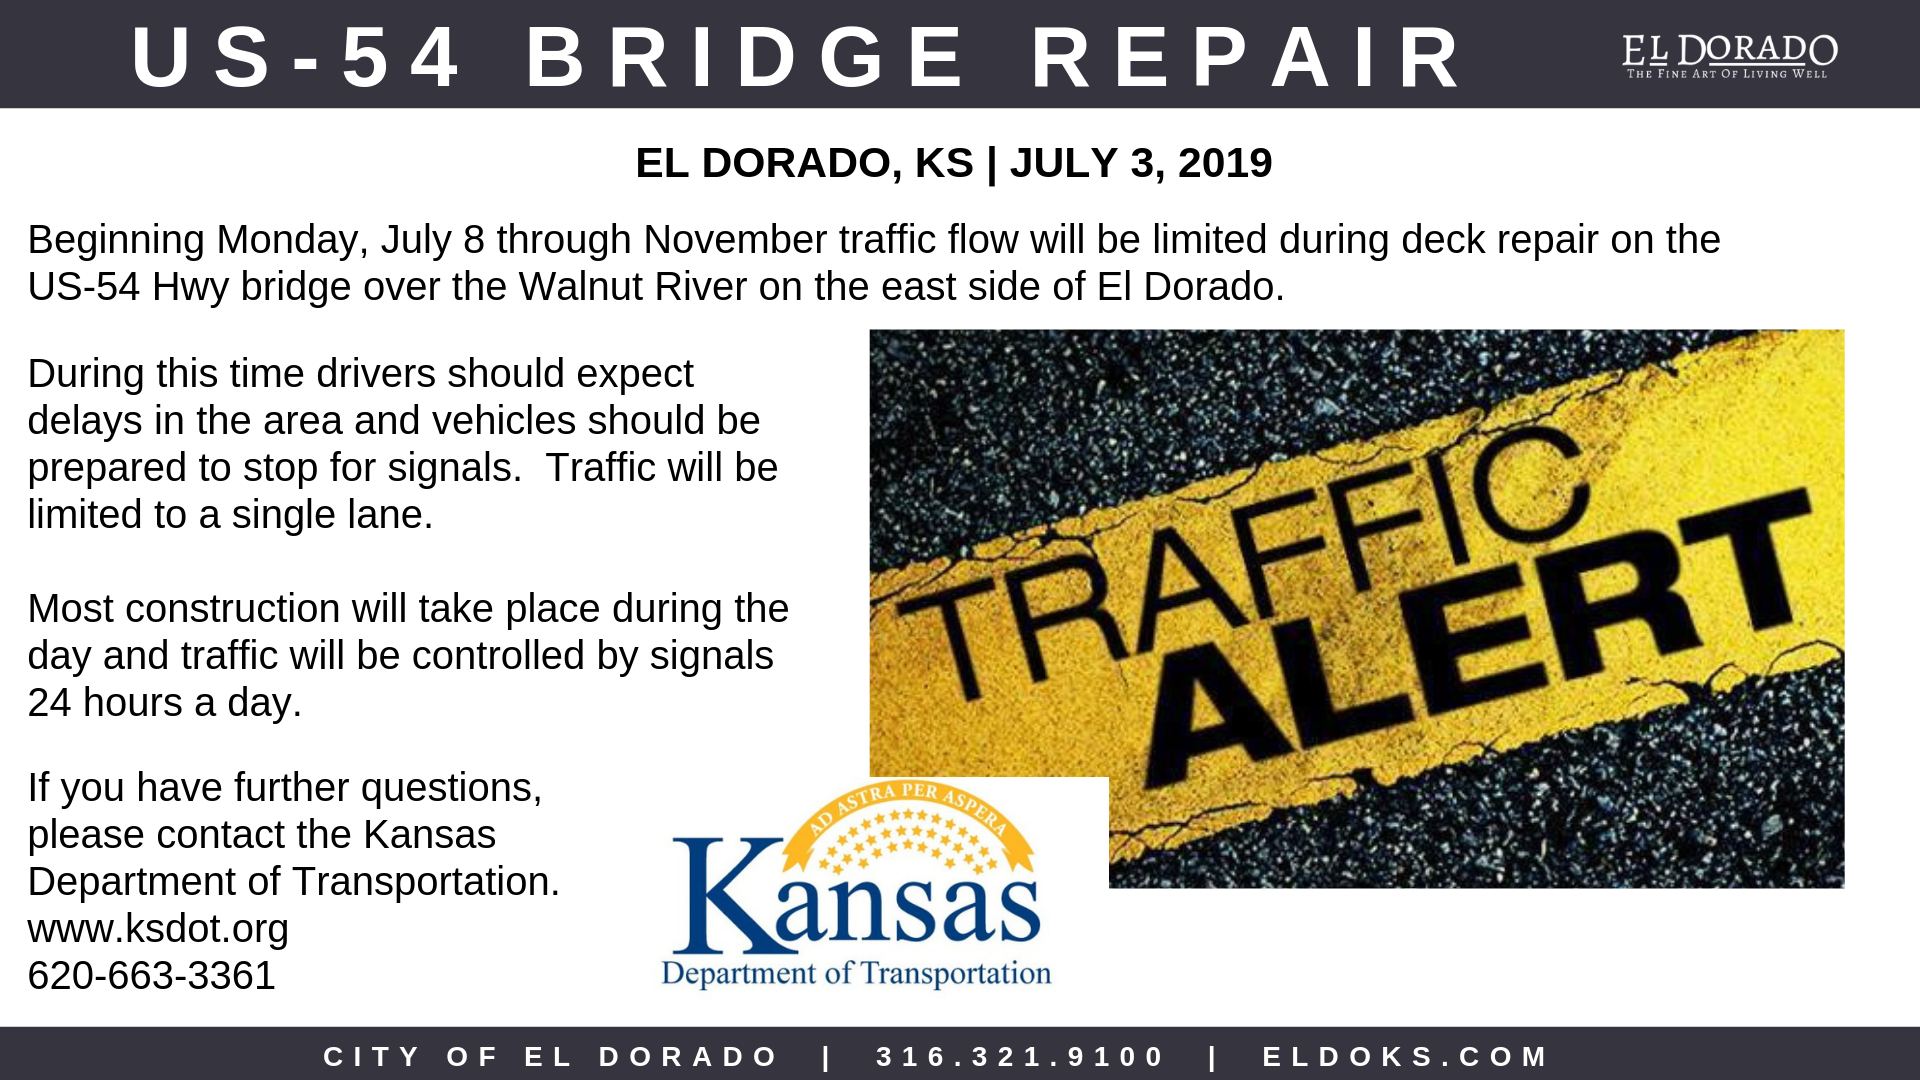 US-54 Bridge Repair 7.3.19